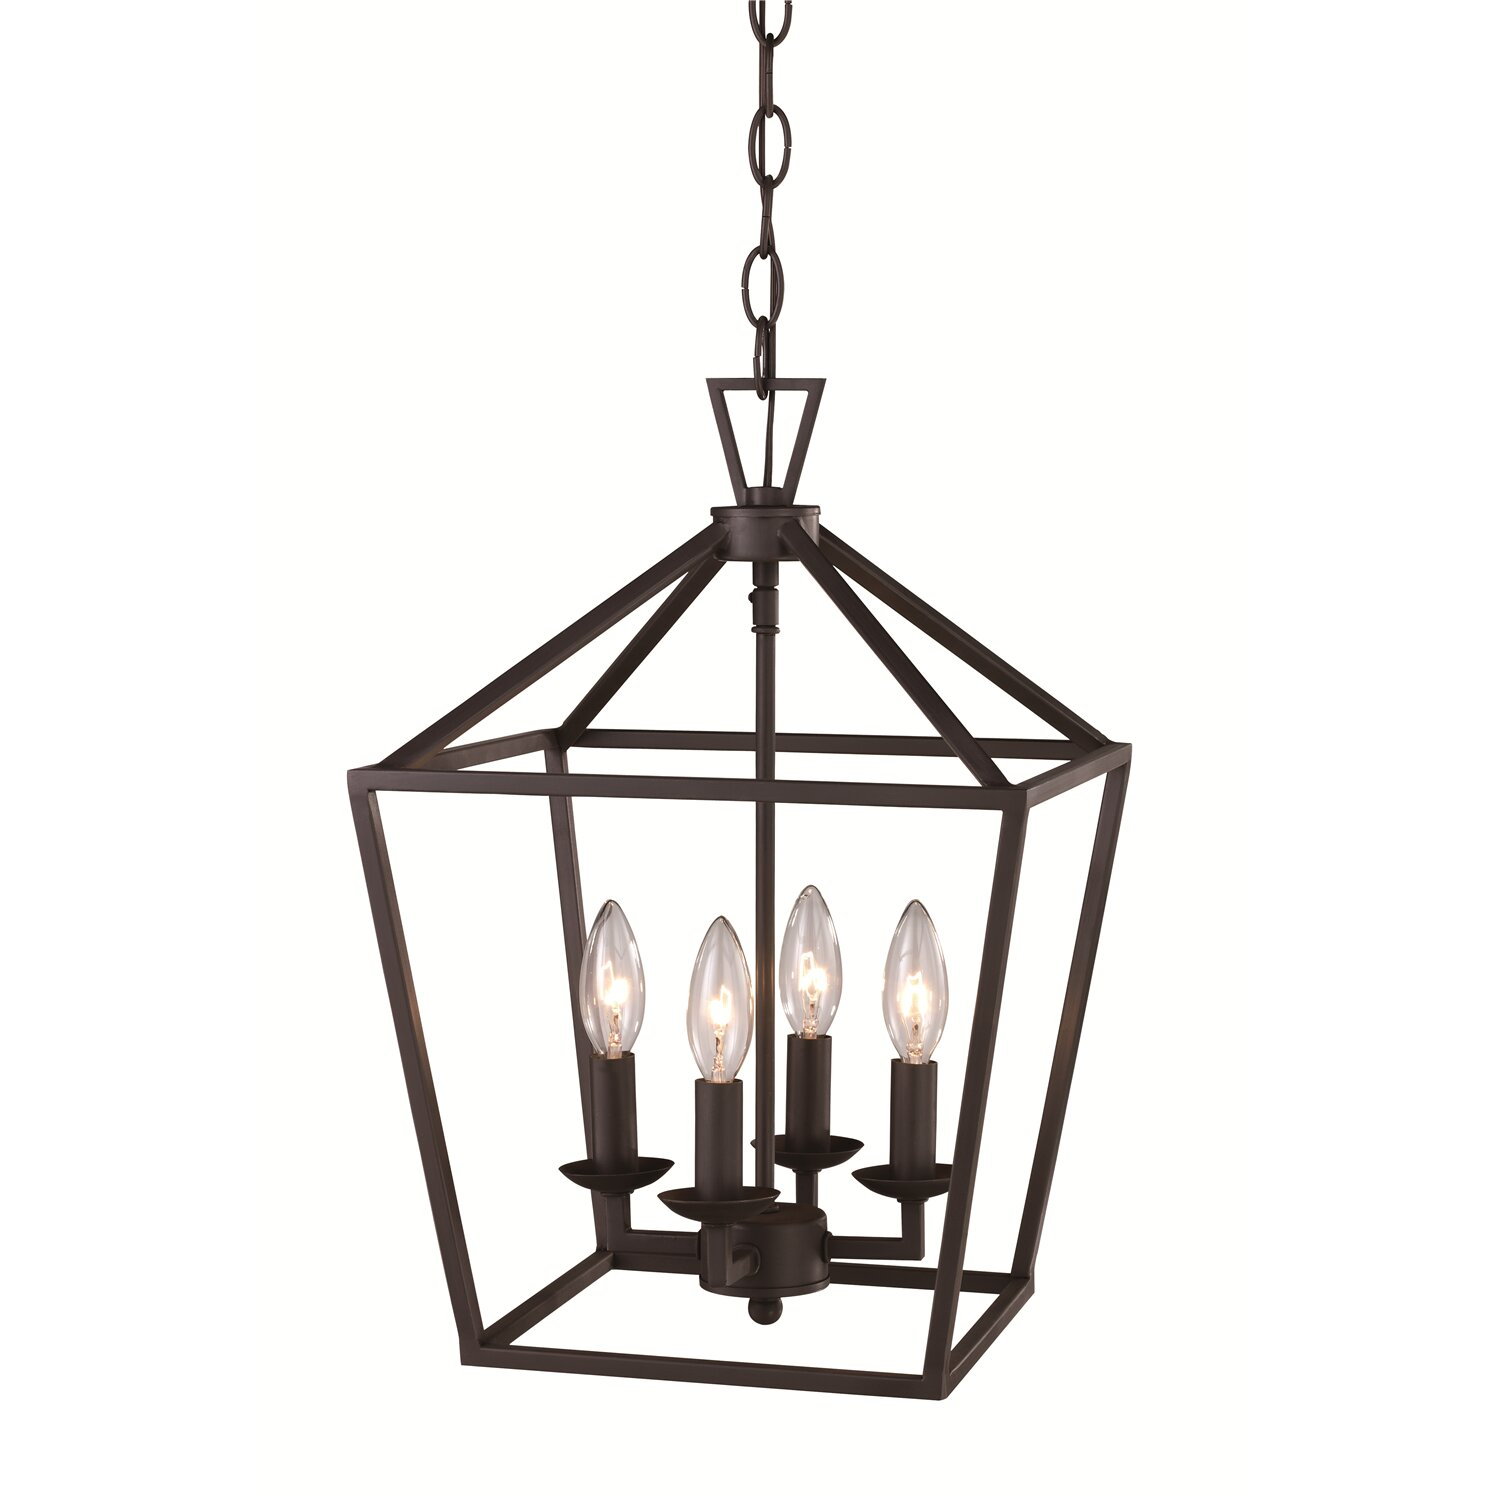 Foyer Pendant Lighting : Transglobe lighting light foyer pendant reviews wayfair